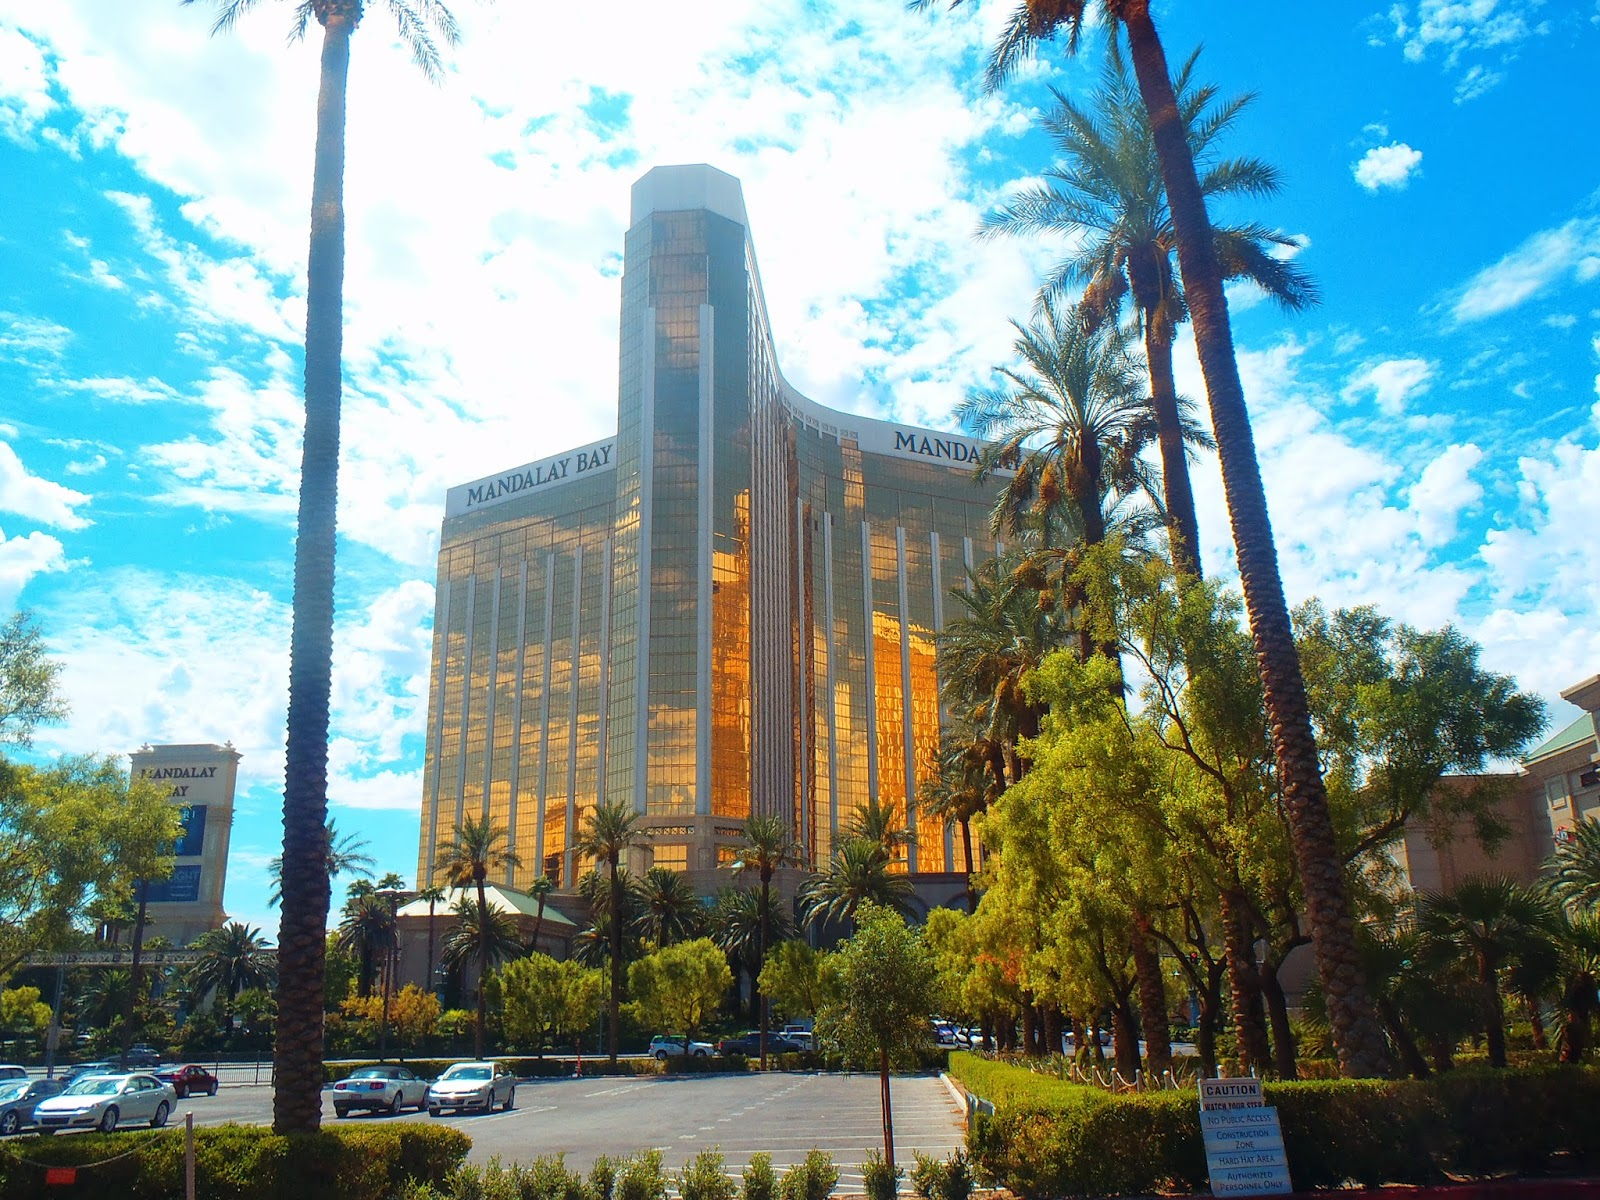 view of the hotel through some palm trees